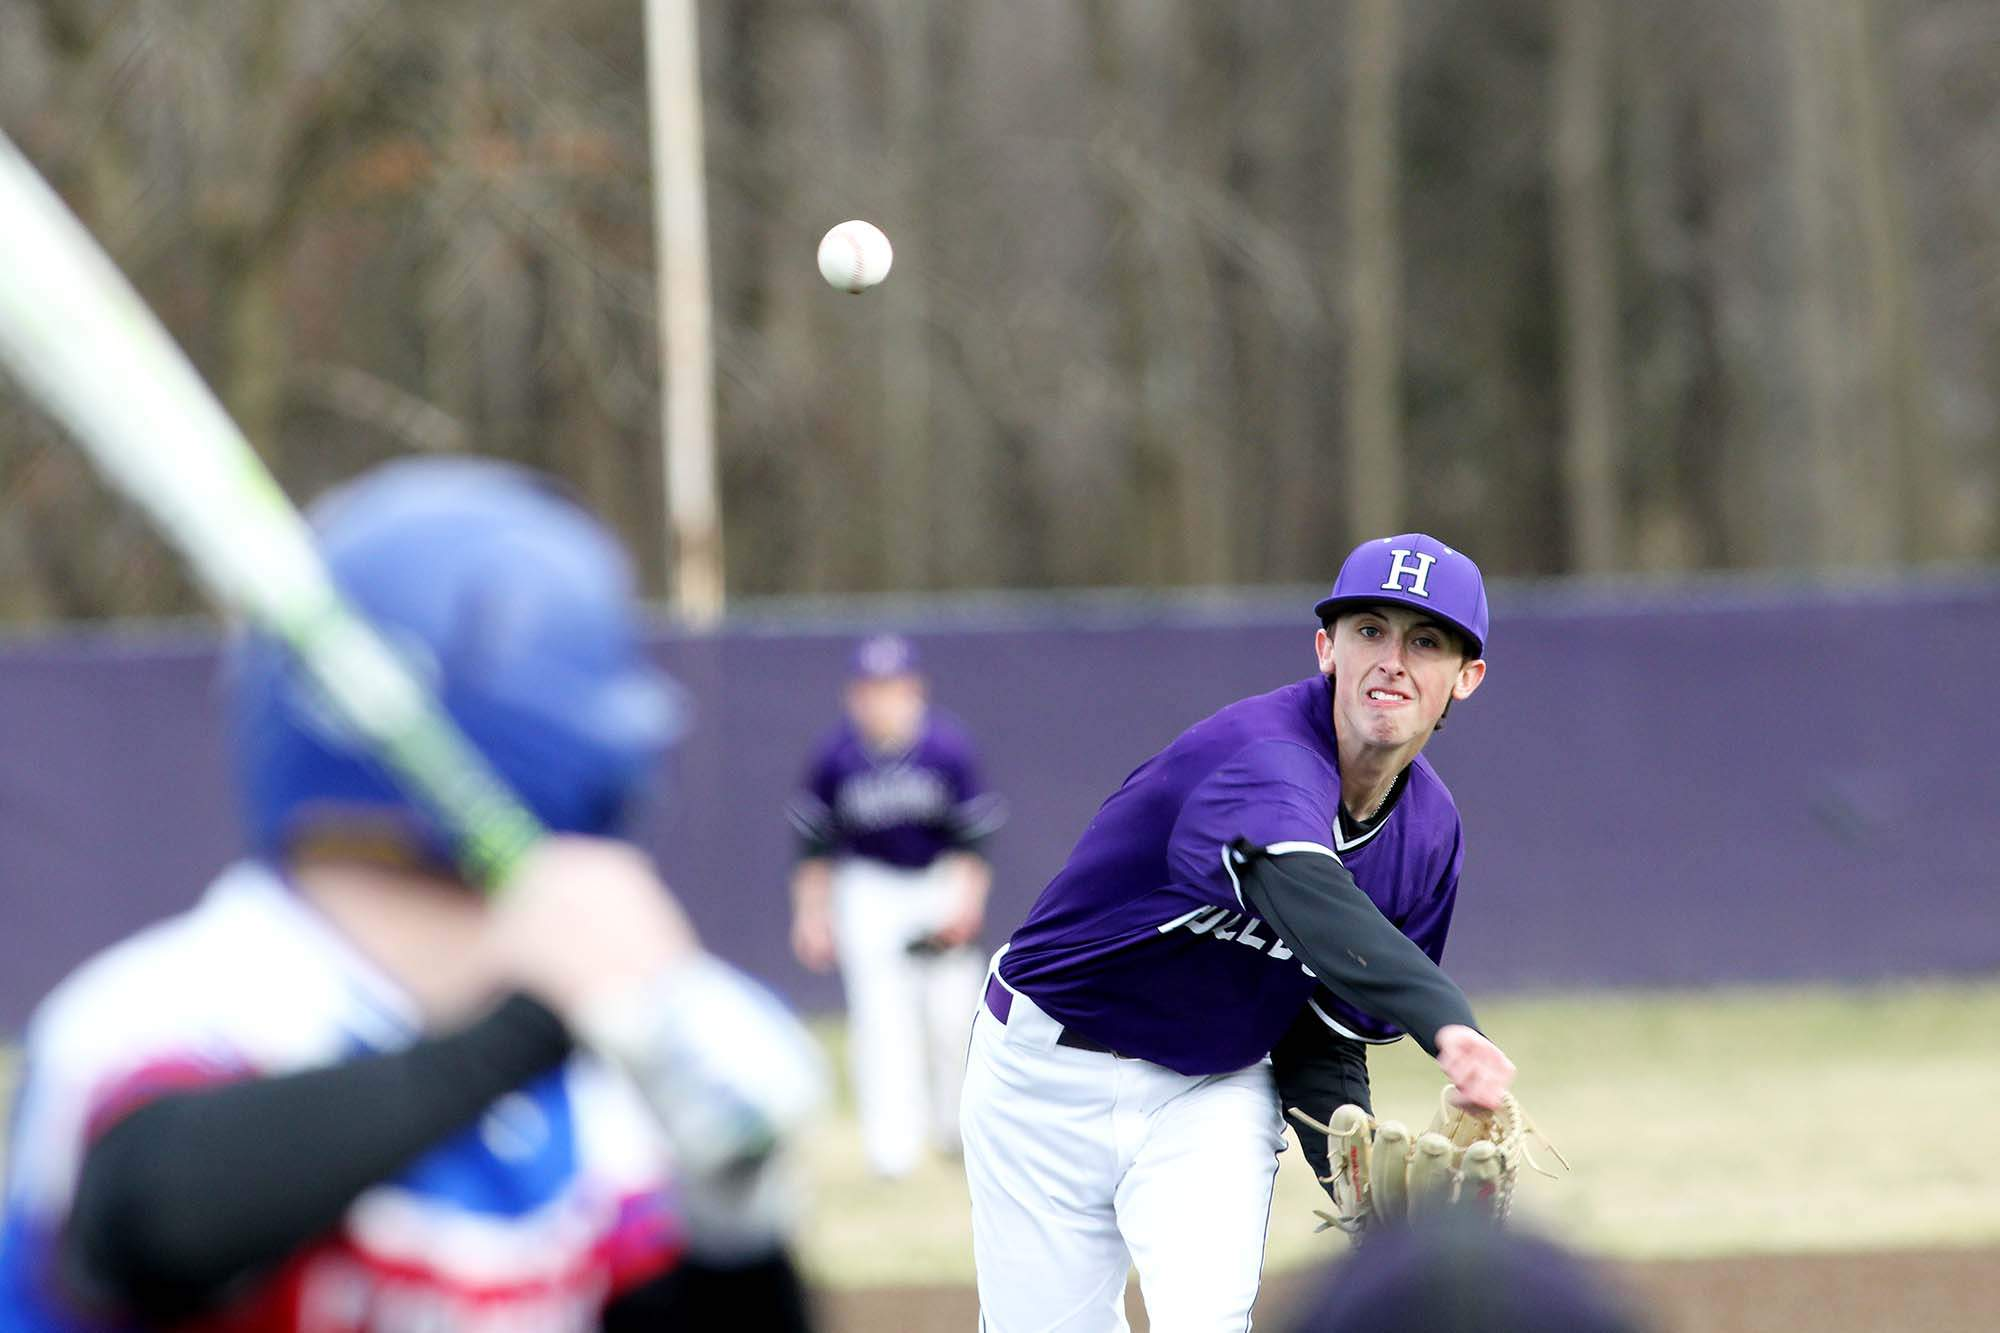 Harrisburg's Connor Phalin pitched one inning in Monday's combined no-hitter against Hardin County.